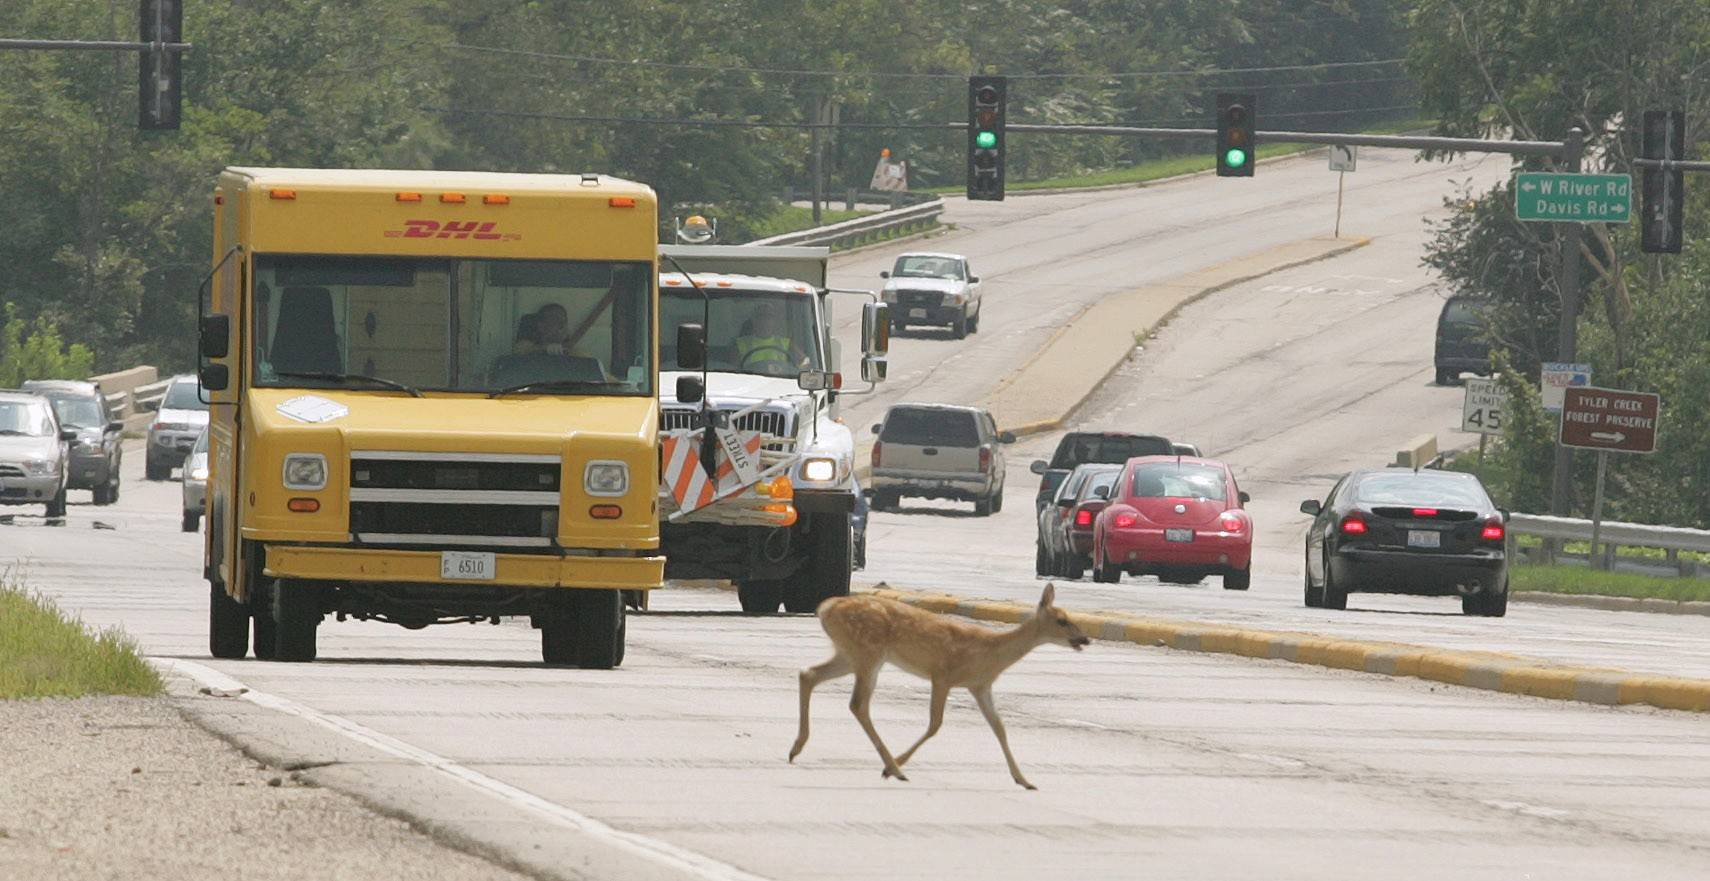 Deer that hit van may have been startled off overpass